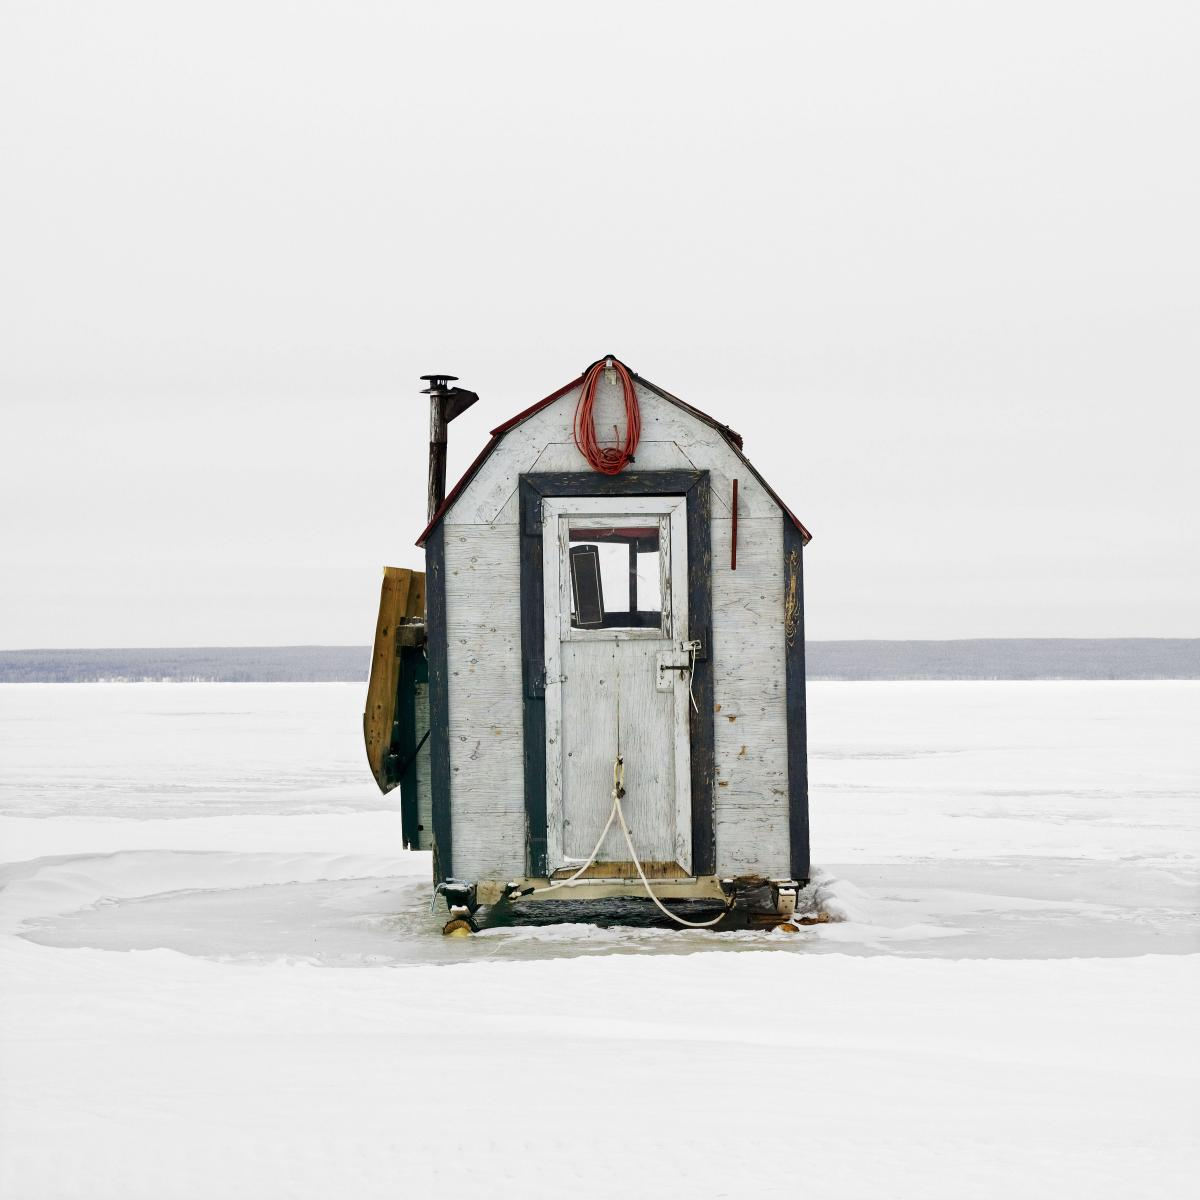 When the Ice Gets Thick by Ben Weeks (Works That Work magazine)